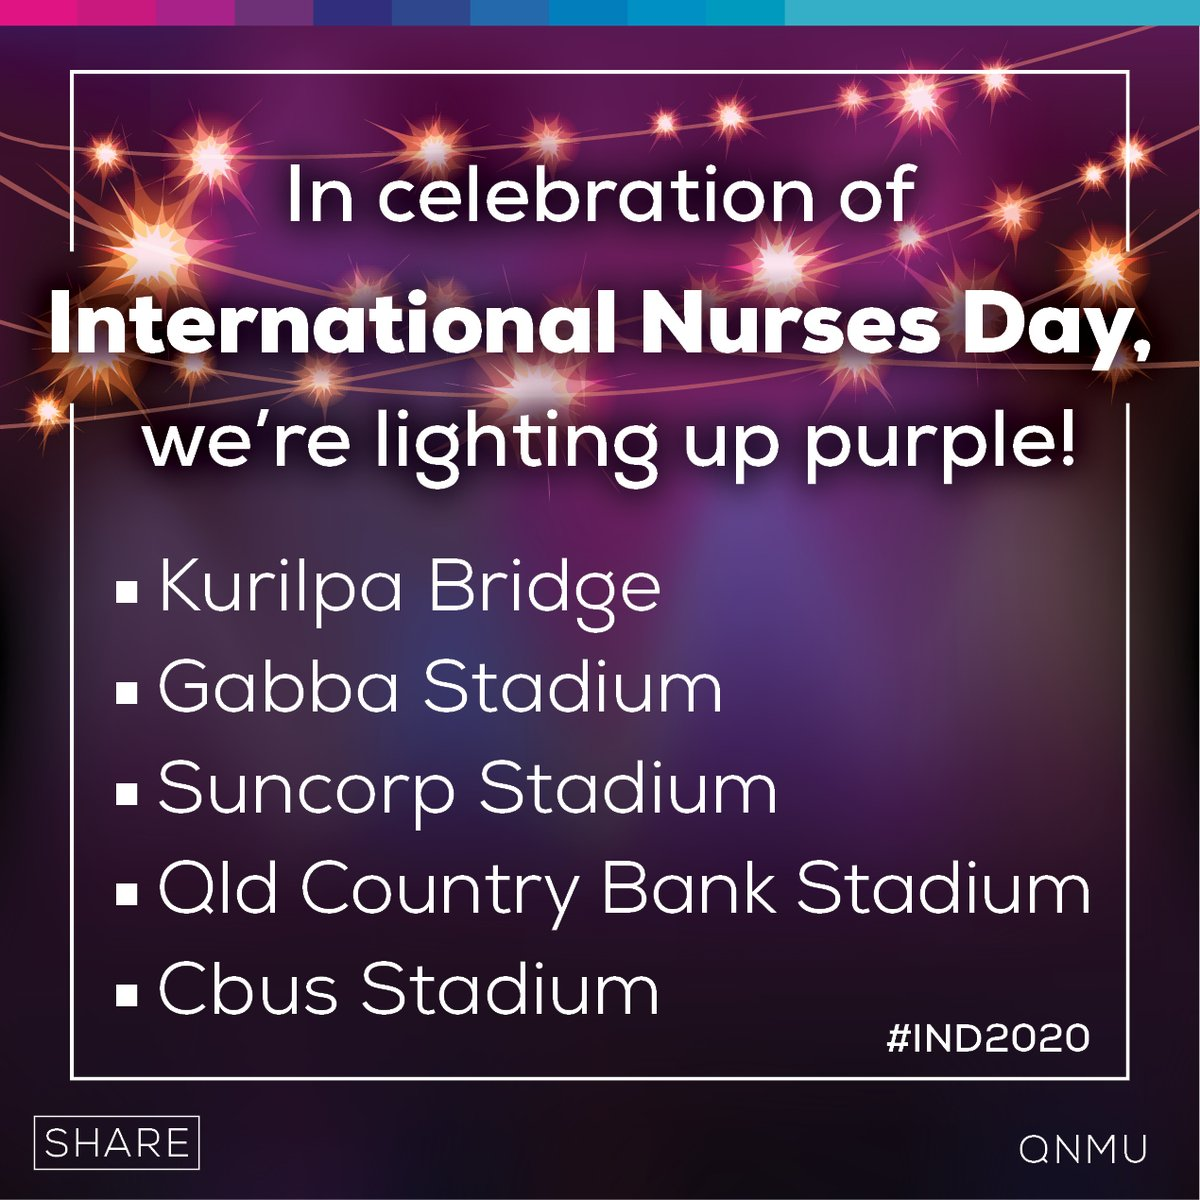 Excitingly, the QNMU has organised for various buildings to be lit up in purple tomorrow in celebration of our day International Nurses Day #IND2020. 💜 📸 If youre out and about, snap a pic with the bridge or stadiums in their purple glory and share it with us!